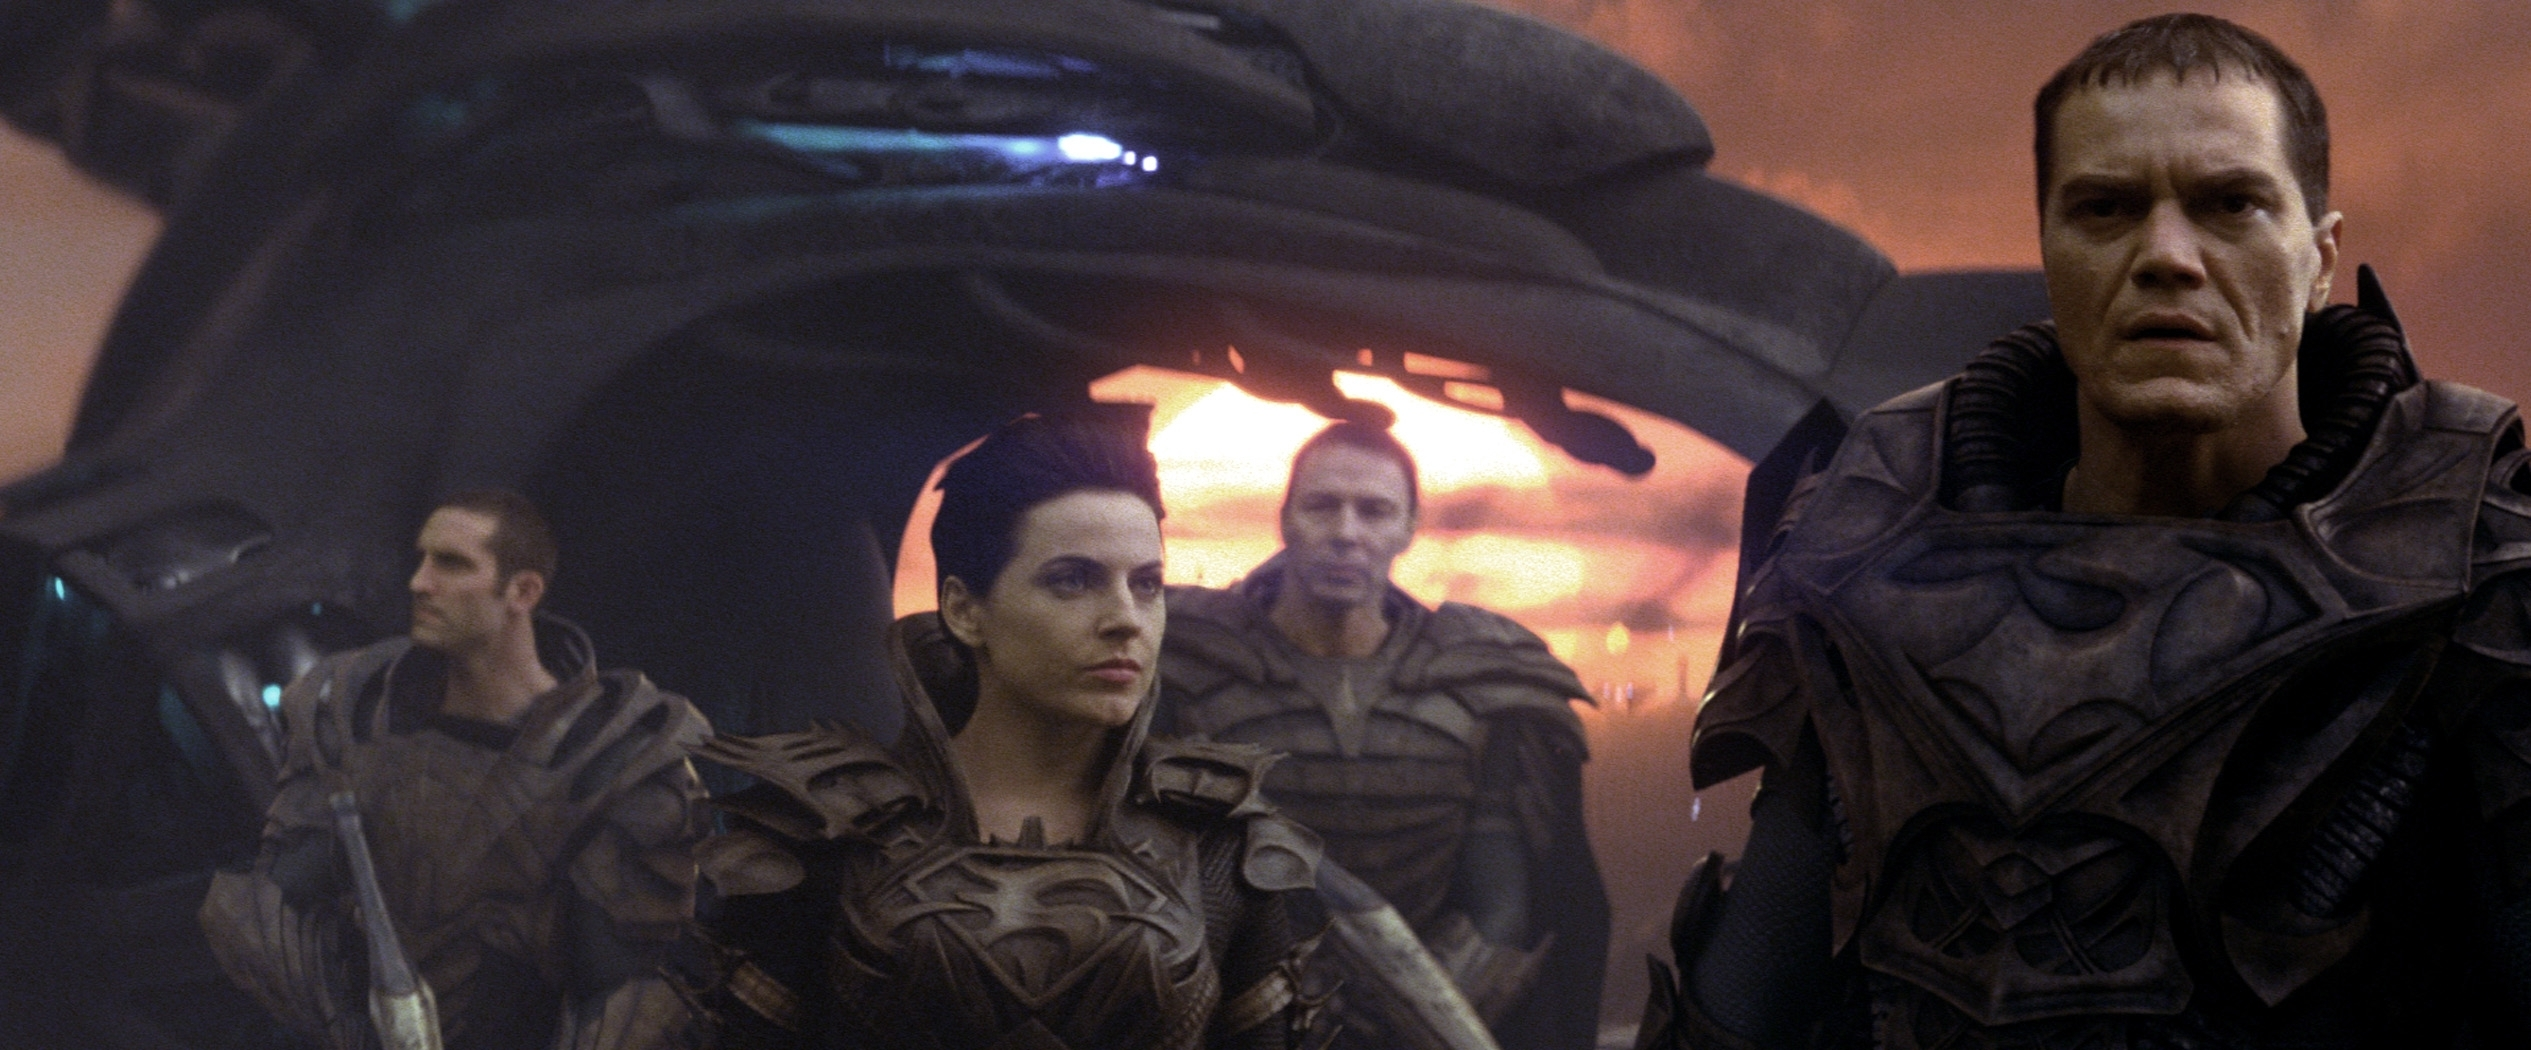 ... and the fallout from the long-ago space-opera insurrection that landed Krypton's General Zod (Michael Shannon, right, with Antje Traue) and his rebels in the Phantom Zone.